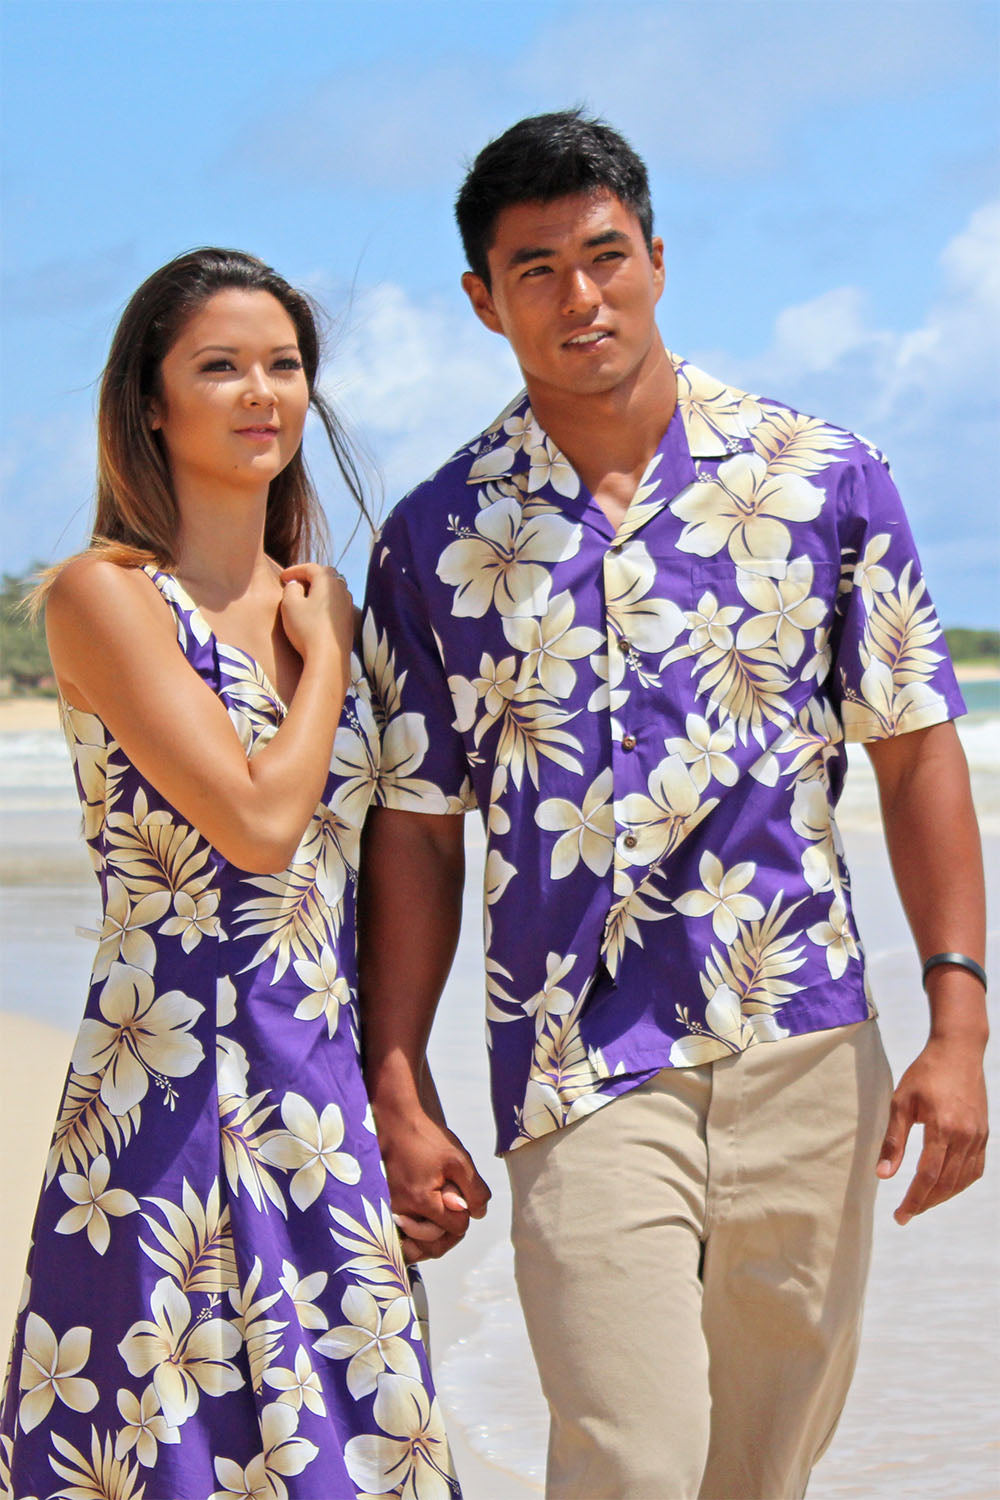 Mike and Ashlee in matching Tropic Fever Aloha shirt and dress